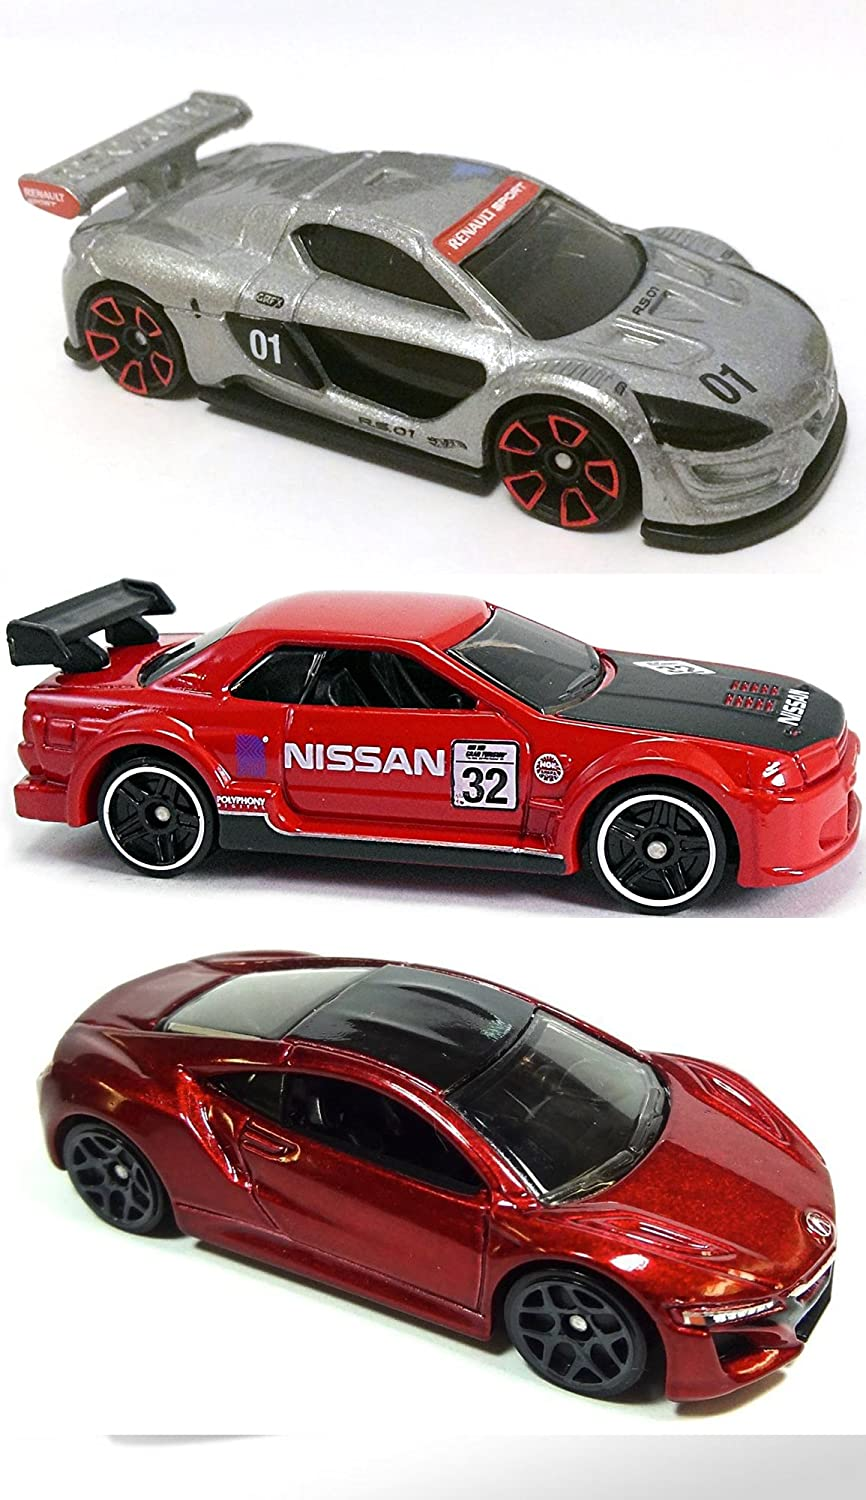 Amazon.com: Hot Wheels Gran Turismo Exclusive Nissan Skyline GT-R + 2017 Acura NSX & Renault Sport R.S. 01 Silver HW Exotics + Then & Now cars in PROTECTIVE ...